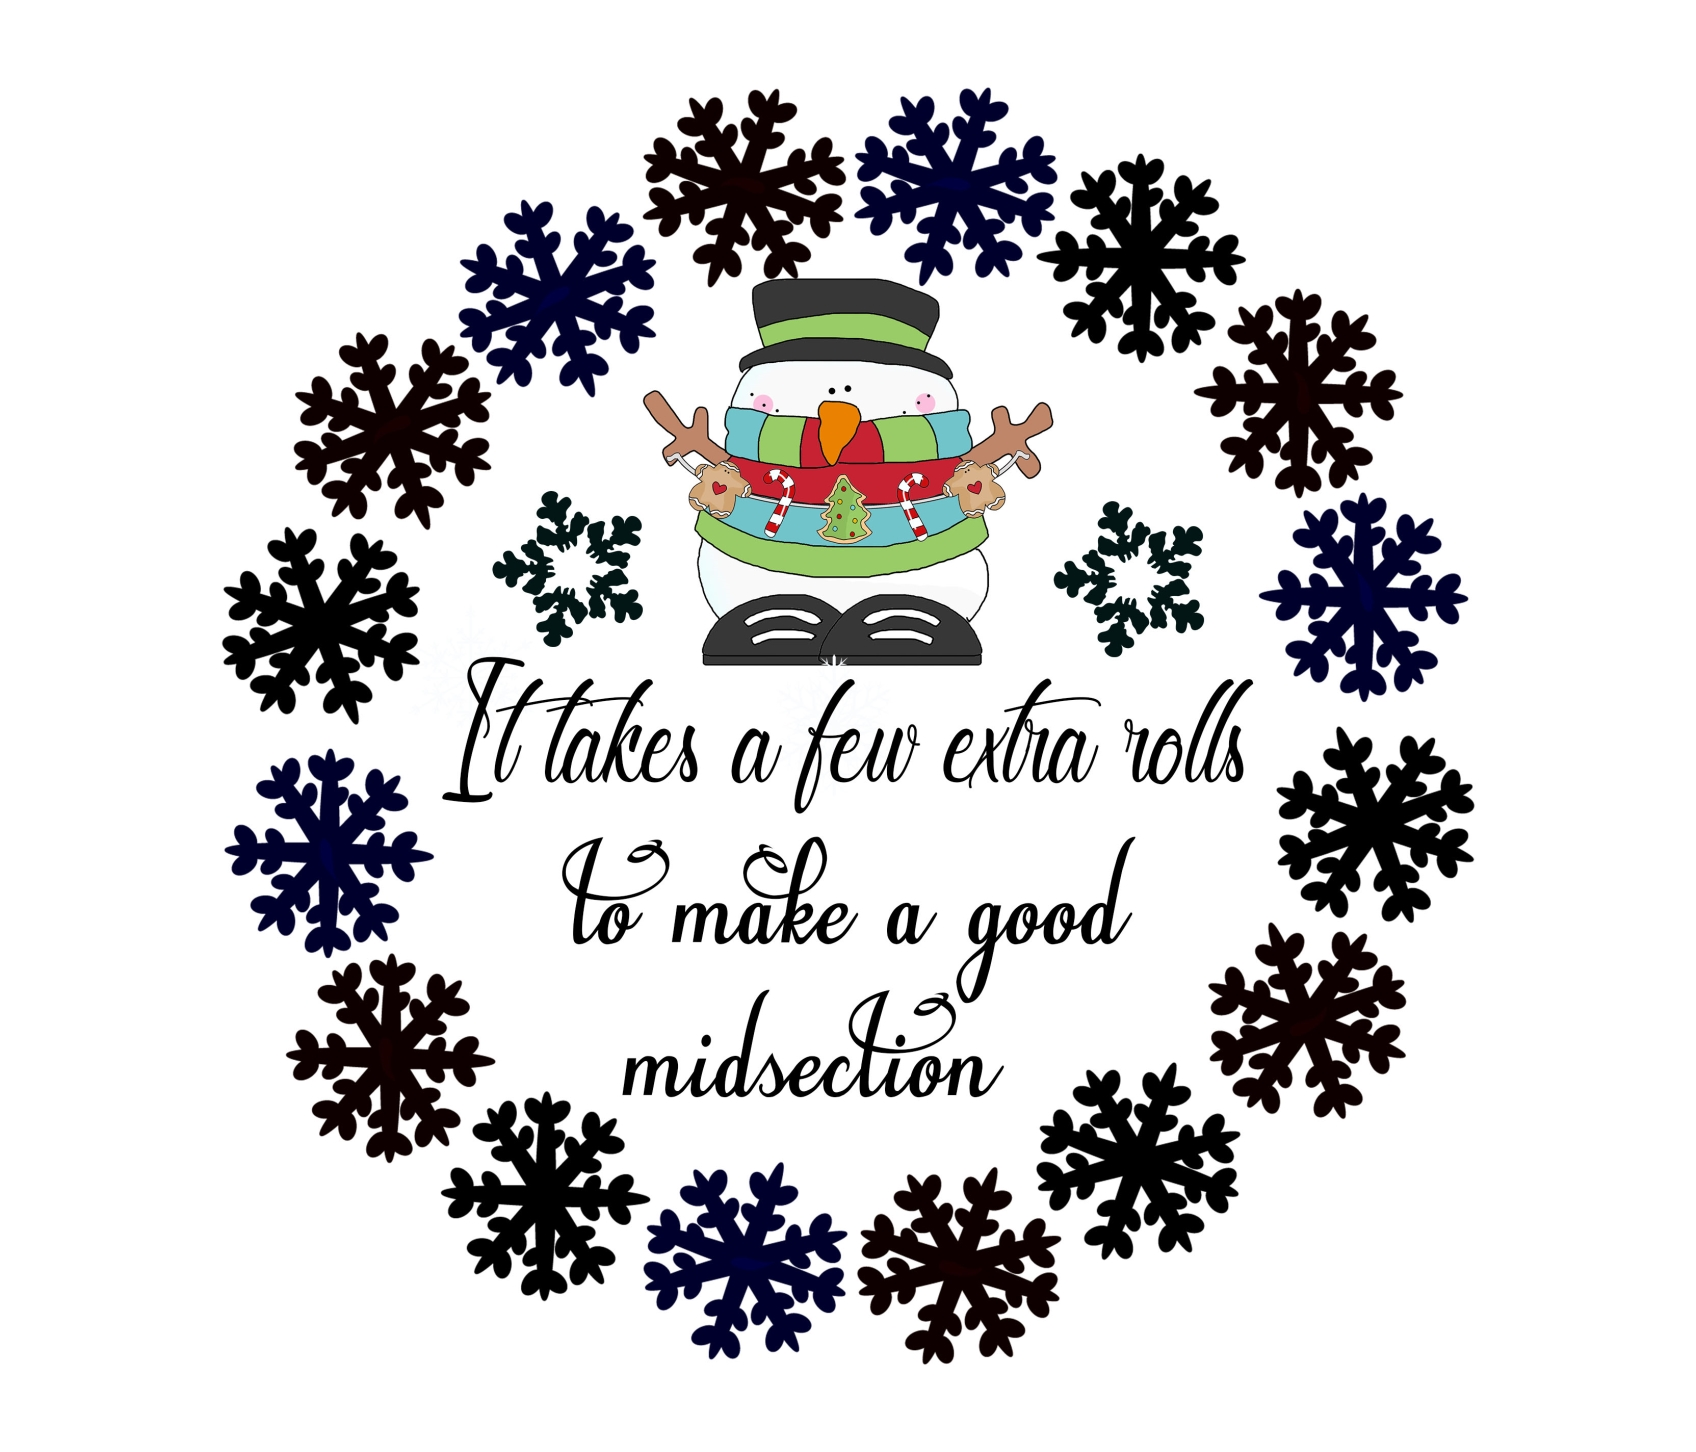 Funny sayings for signs clipart png library Funny Christmas Sayings, Signs - Printable Metal Sign Graphics png library